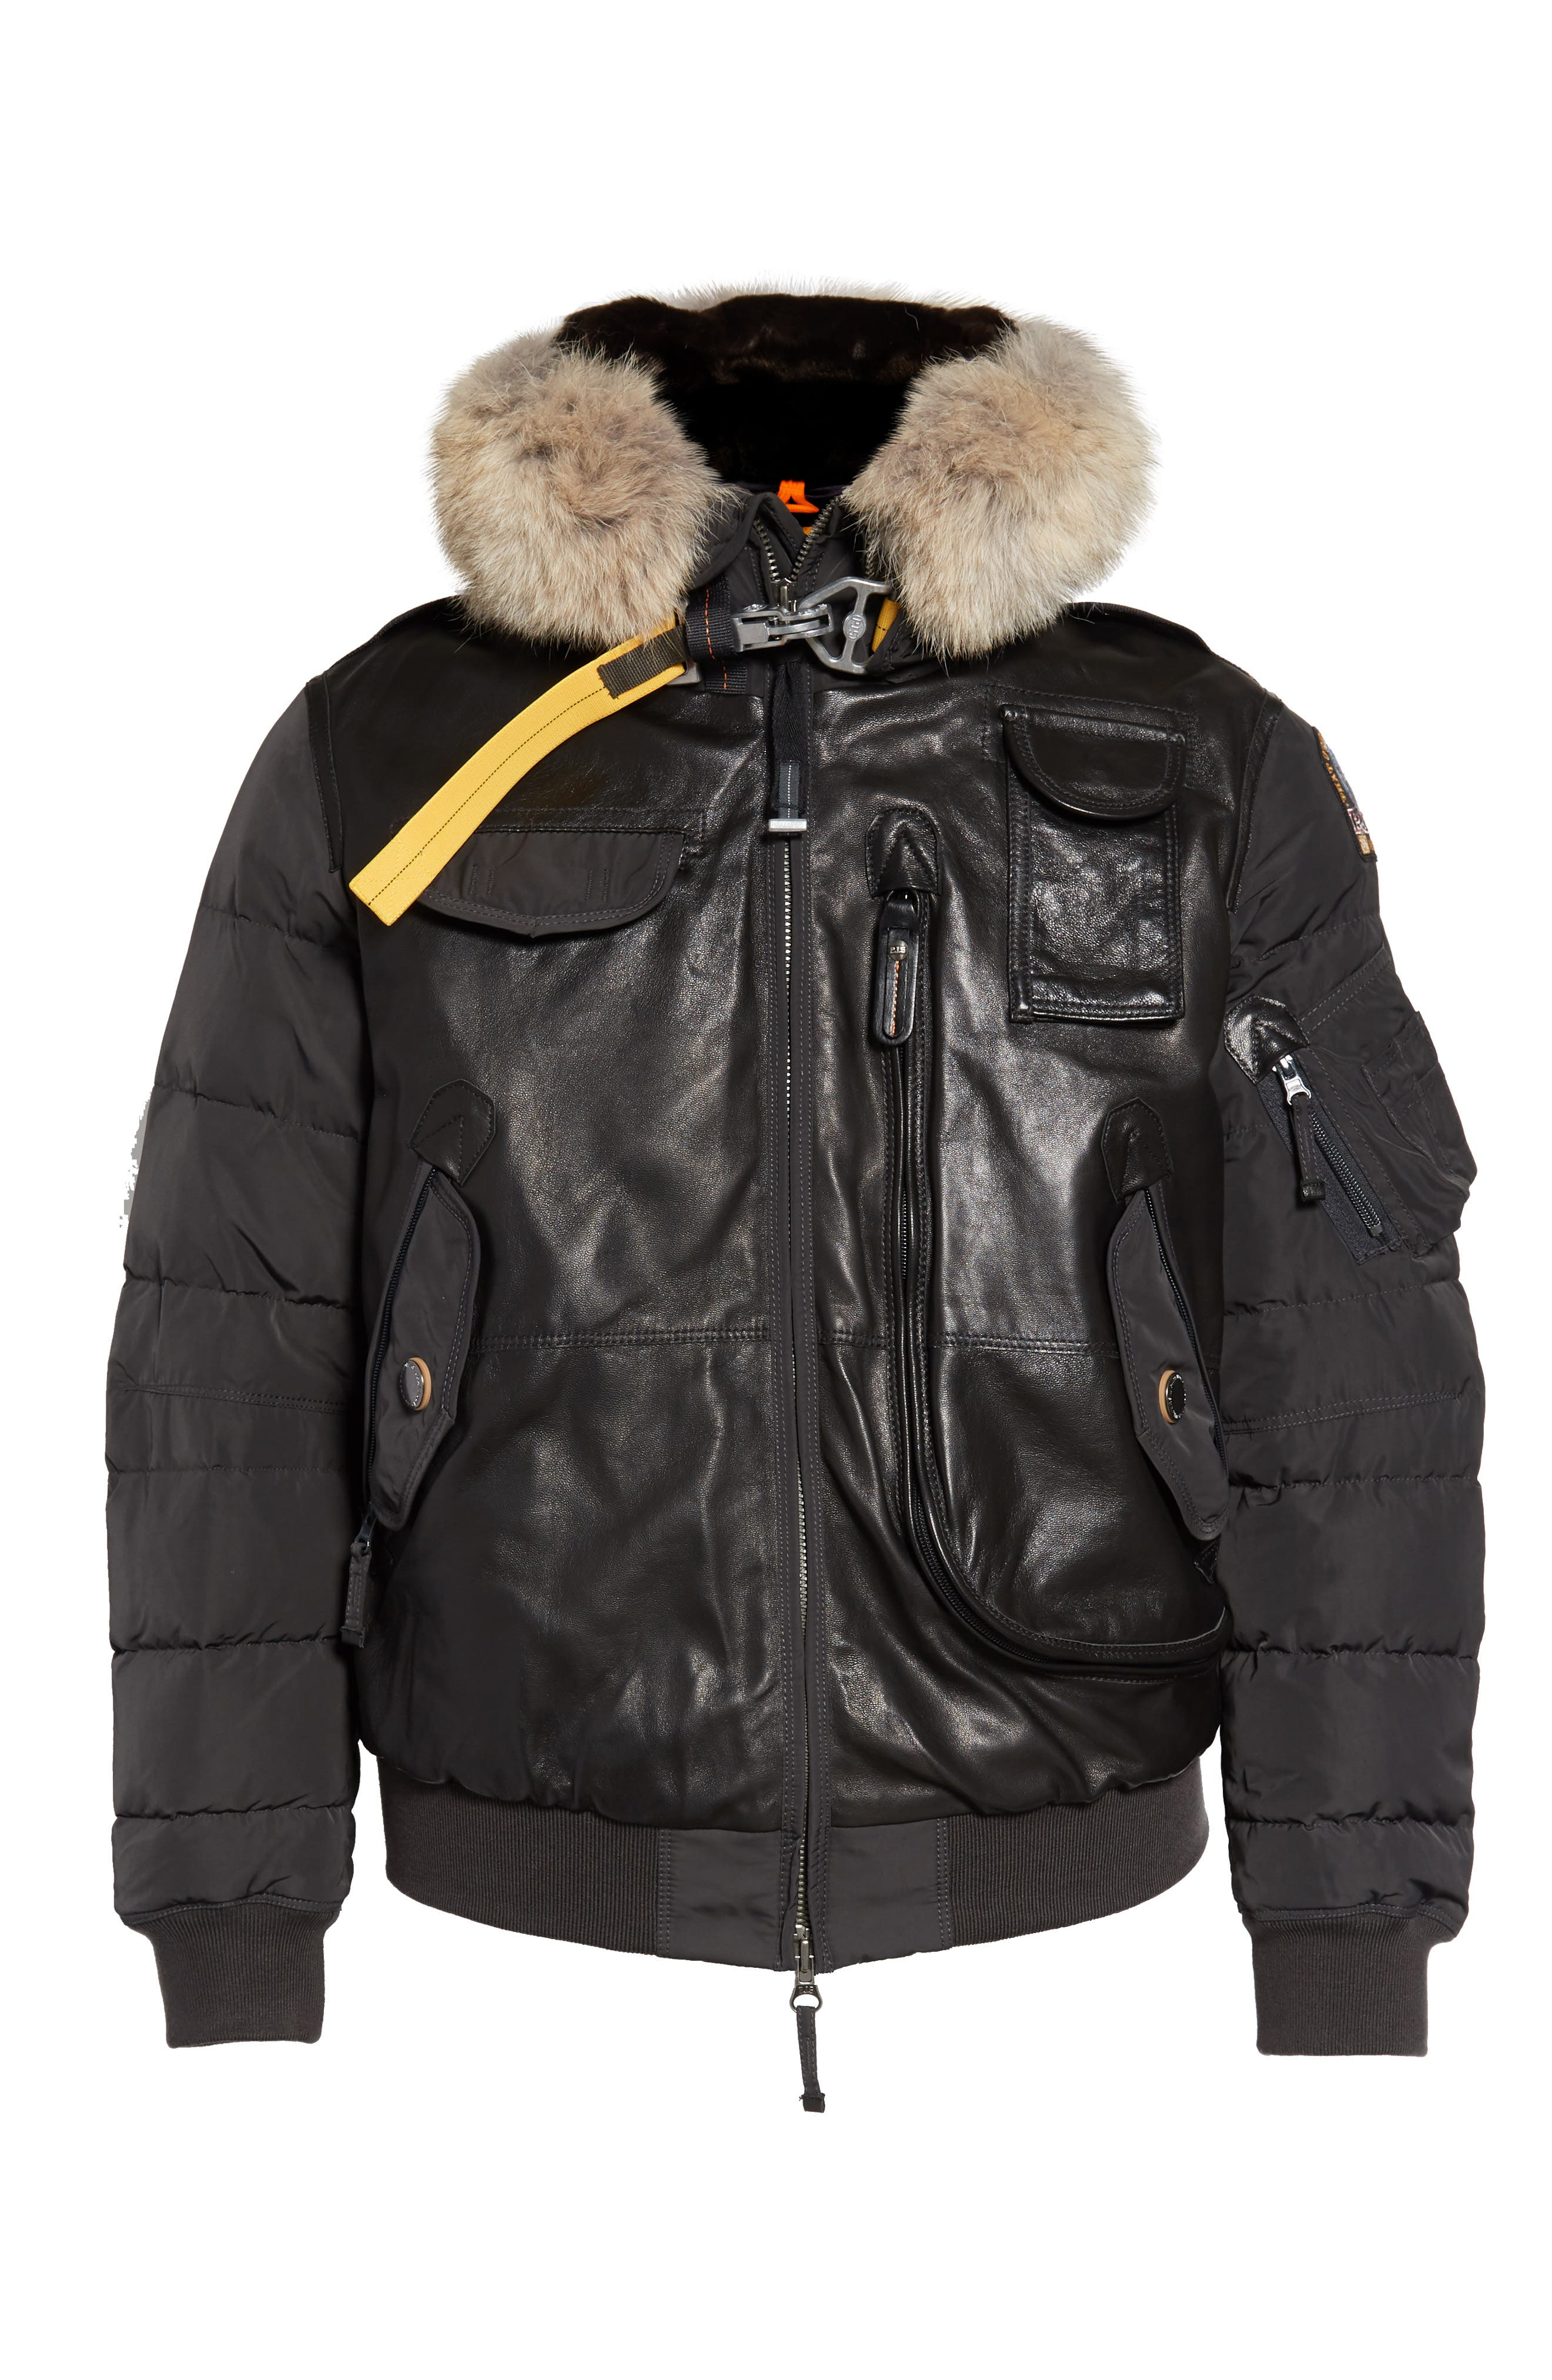 Grizzly Down Bomber Jacket with Genuine Coyote Fur Trim,                             Alternate thumbnail 5, color,                             ANTHRACITE